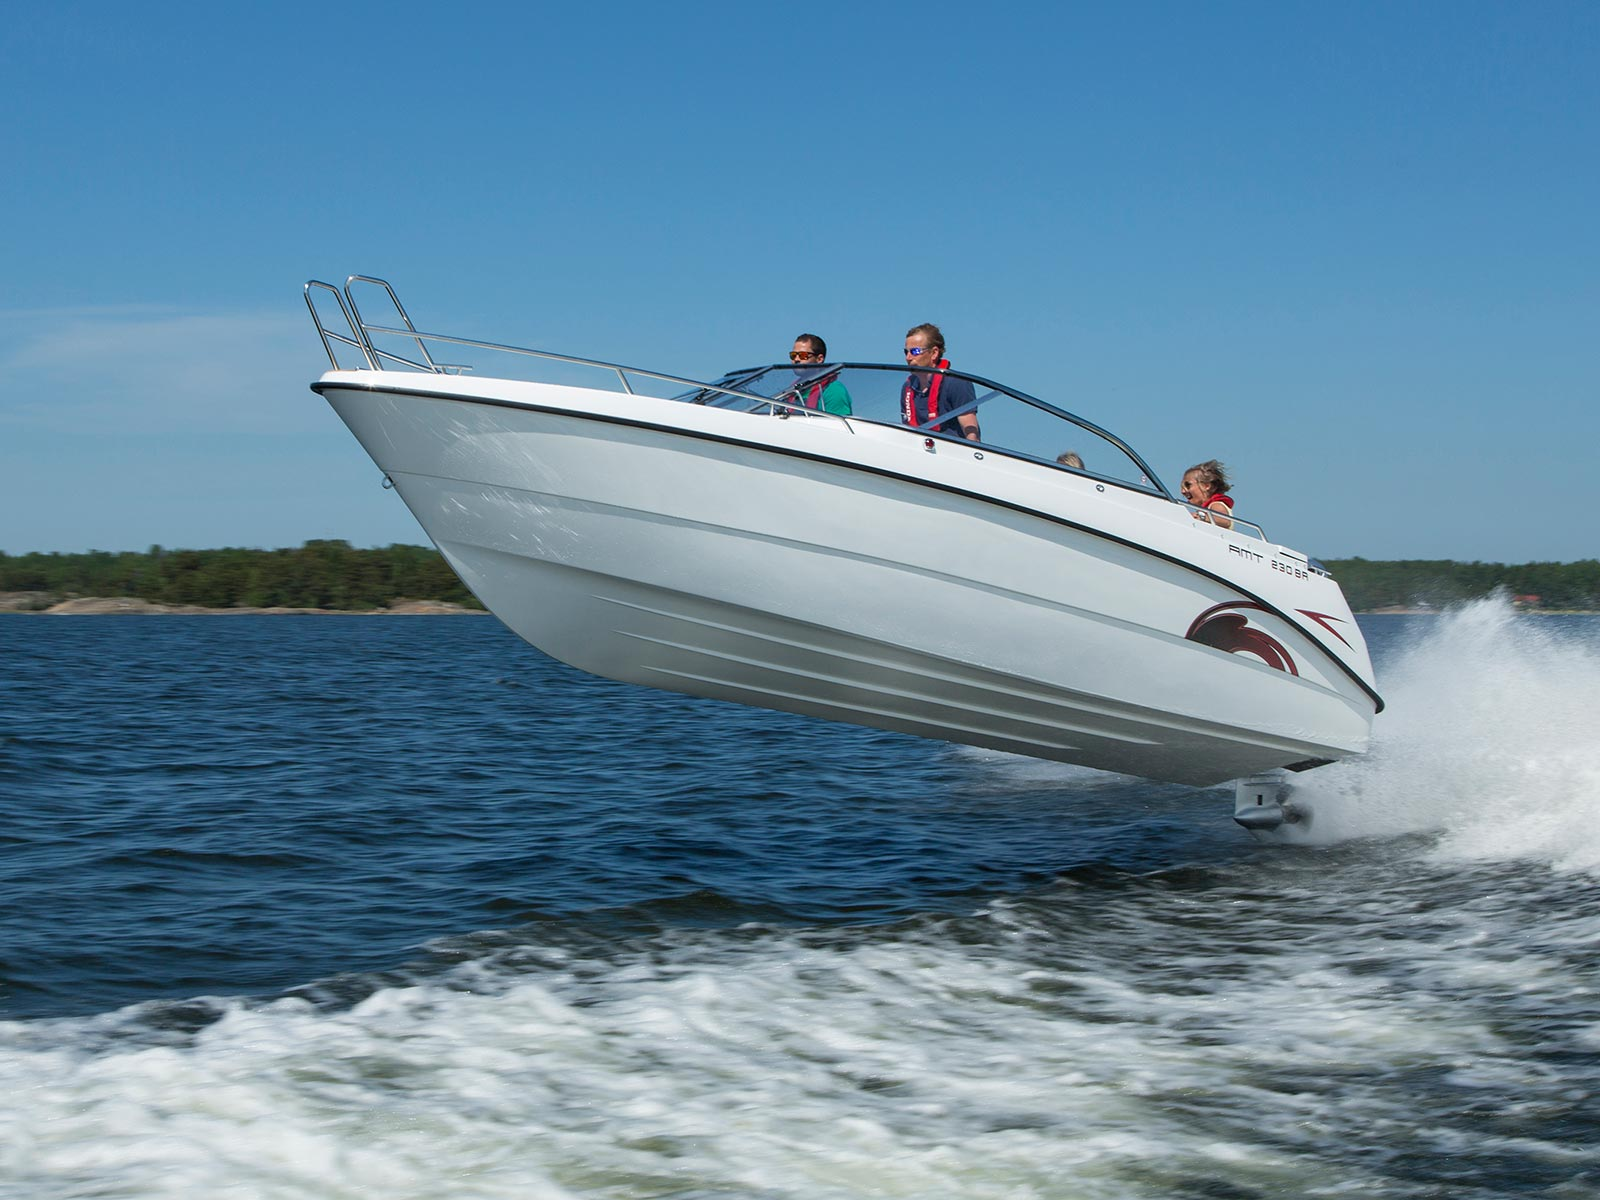 AMT 230 BR | Boat Solutions, Utting am Ammersee